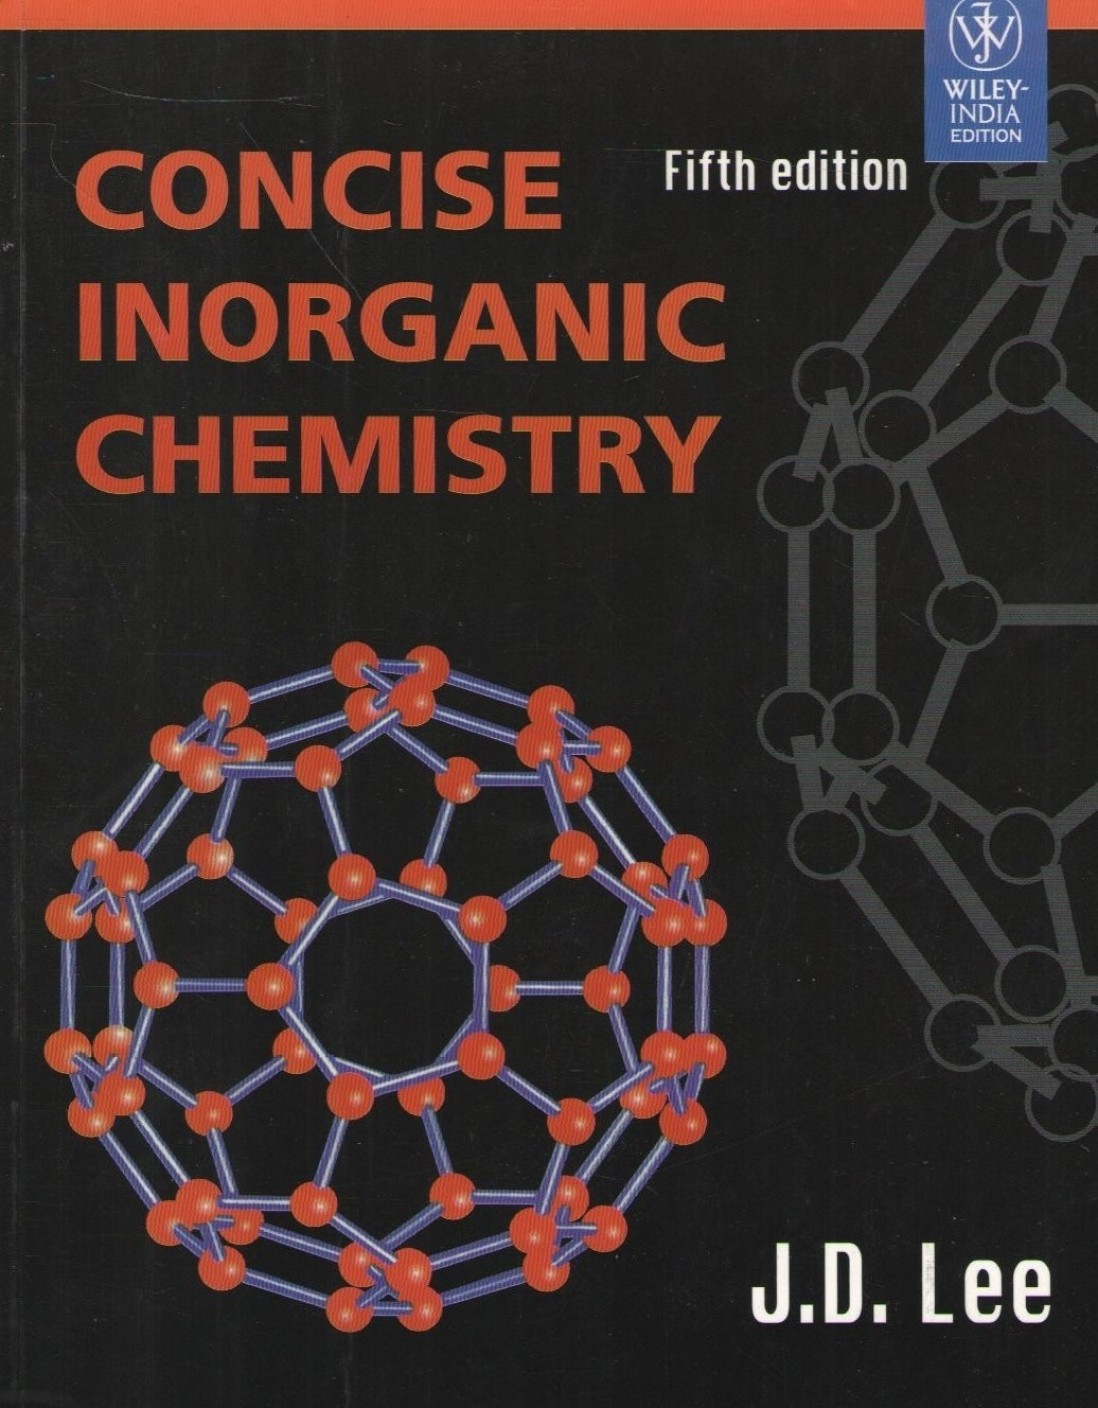 concise inorganic chemistry 5th edition buy concise inorganic concise inorganic chemistry 5th edition add to cart